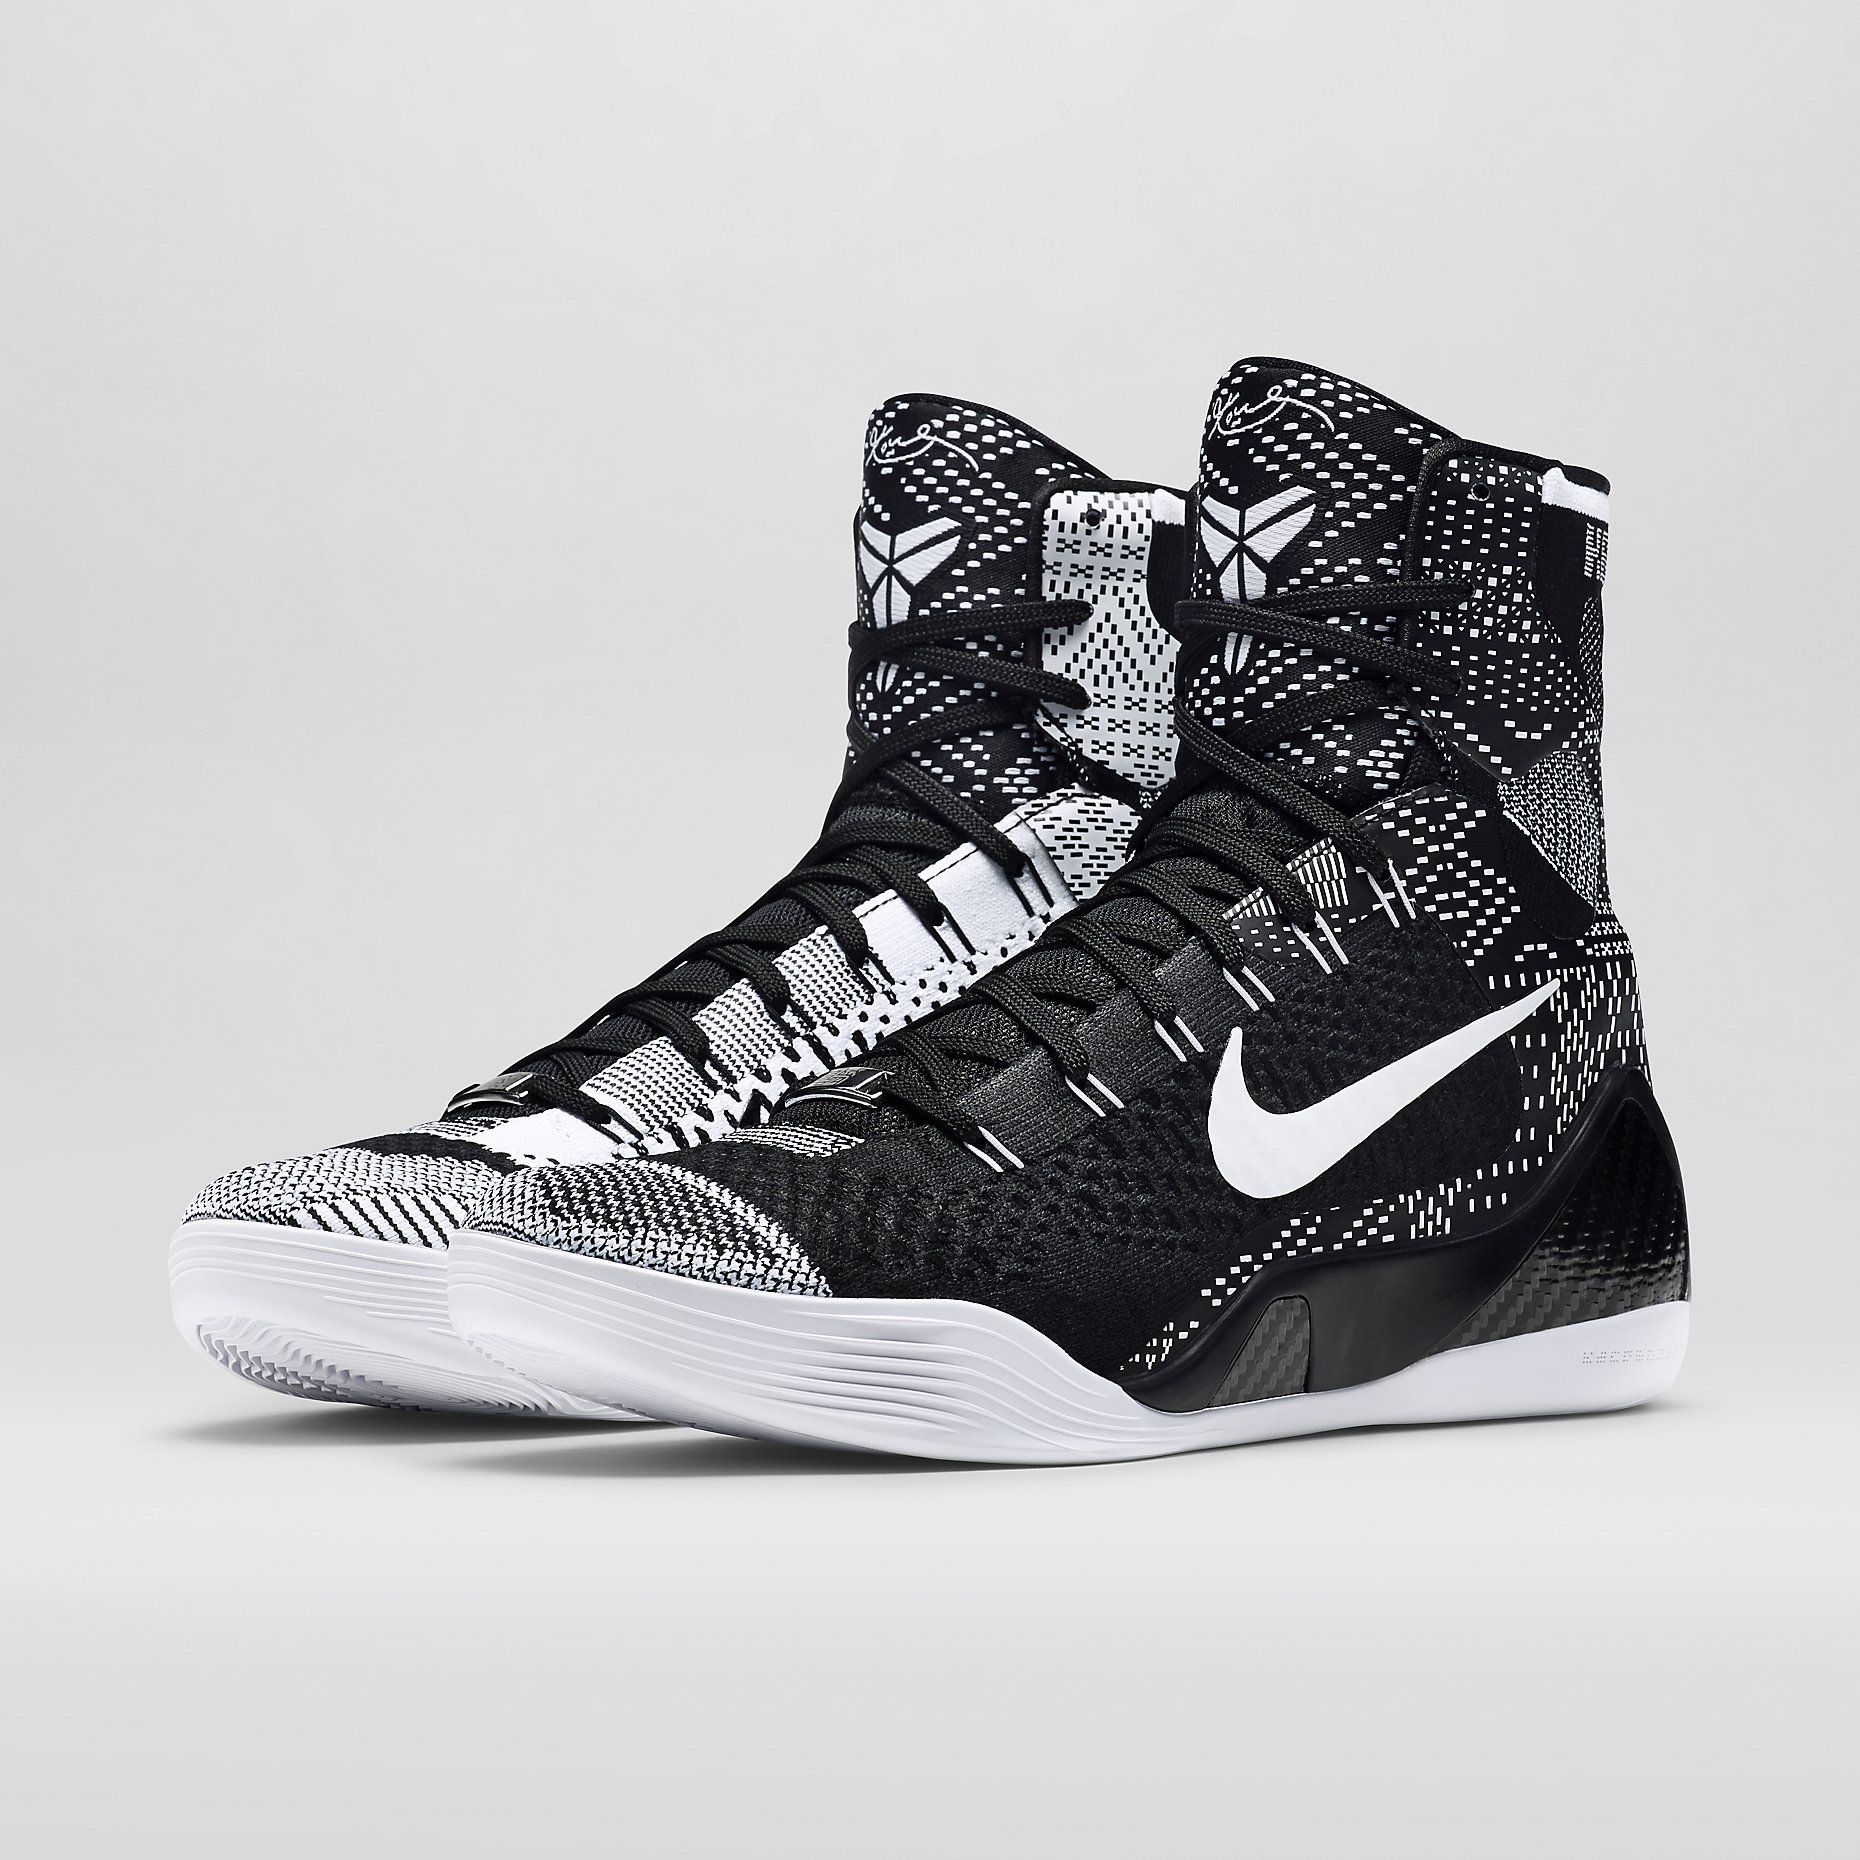 6c86b1211ada Kobe 9 Elite BHM Men s Basketball Shoe. Nike Store UK